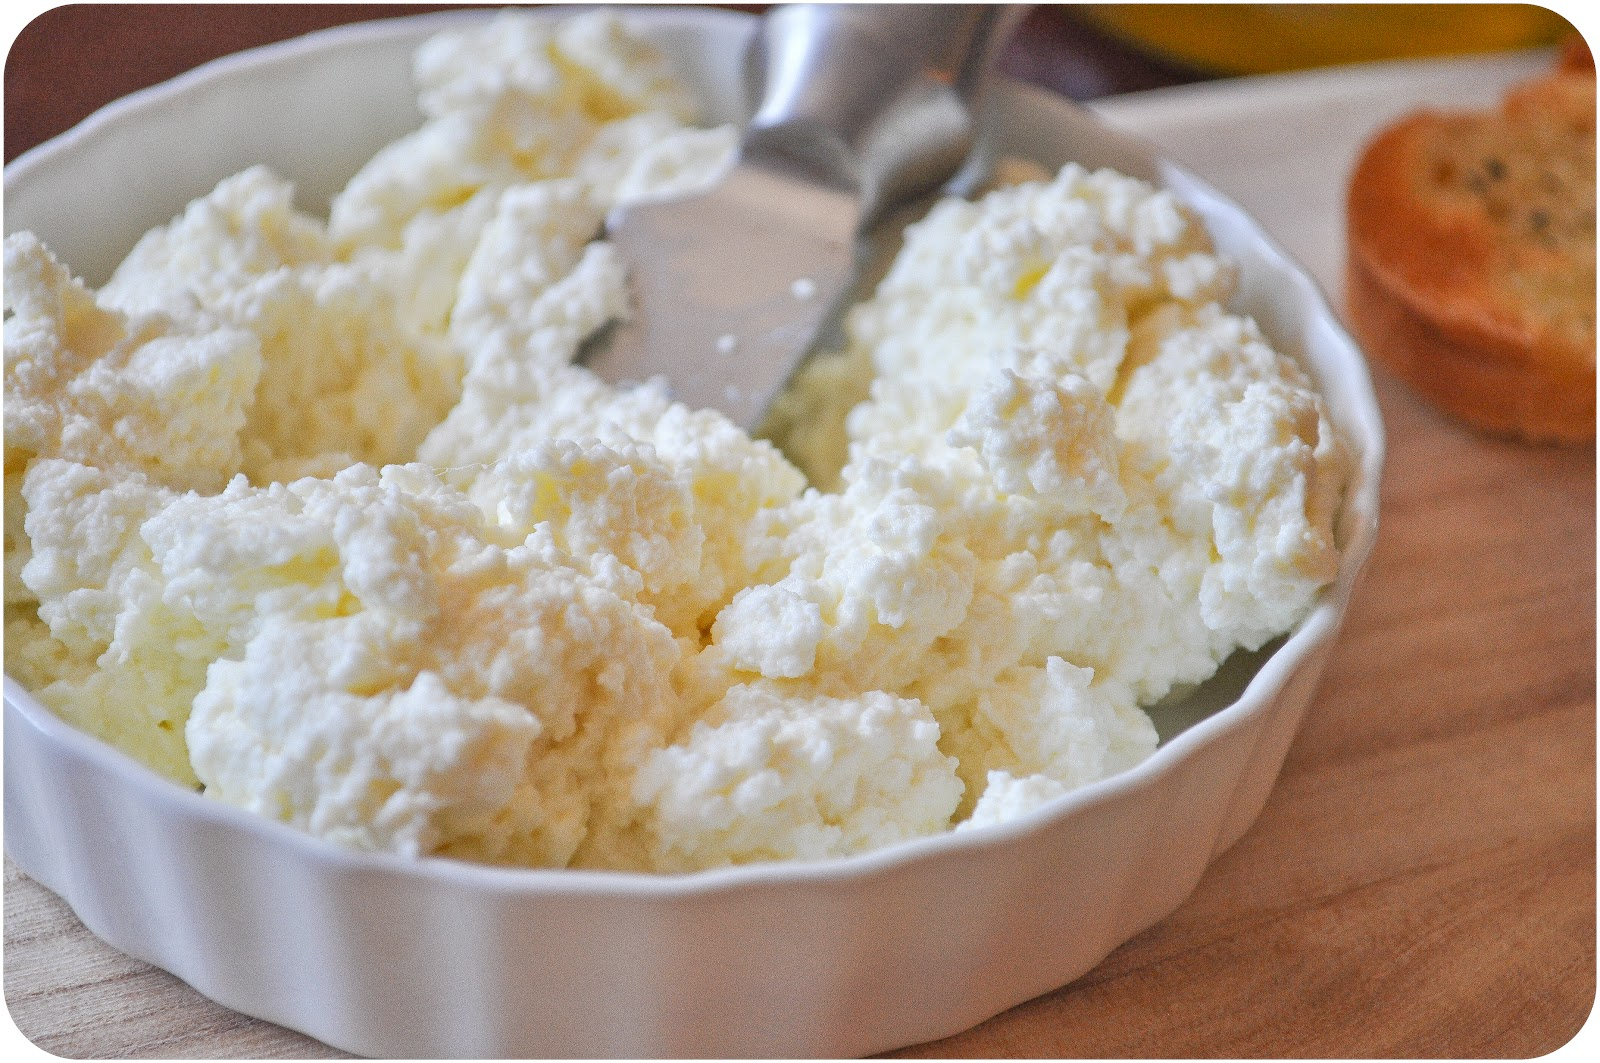 Can You Freeze Ricotta Cheese?